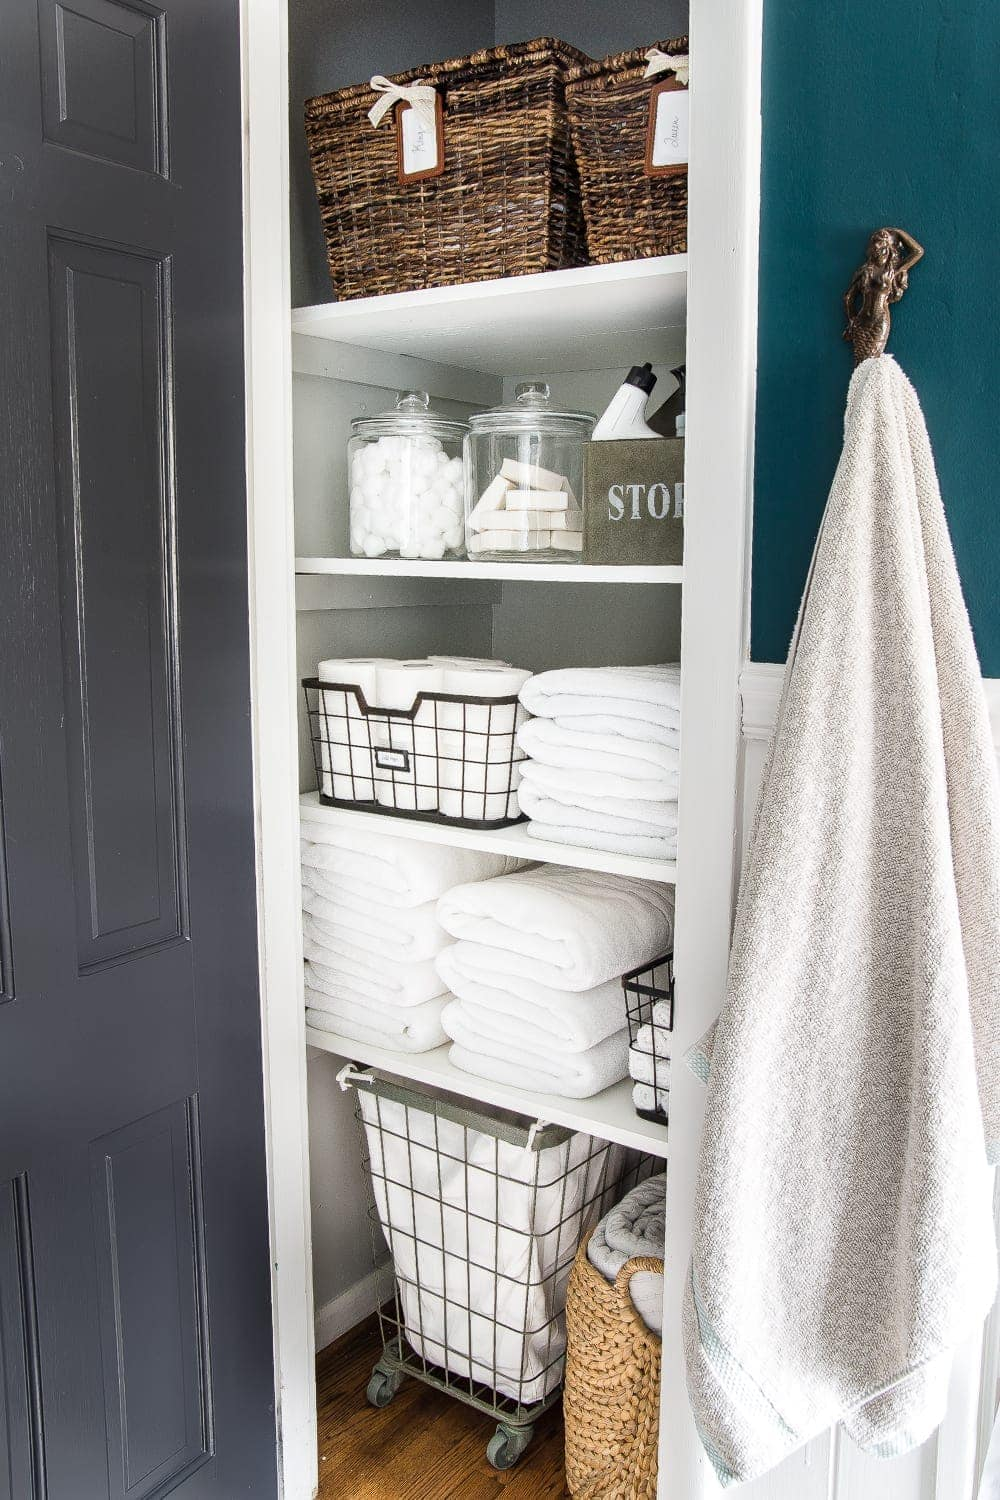 Top 10 Home and DIY Blog Posts of 2018 | Linen Closet Organization Makeover